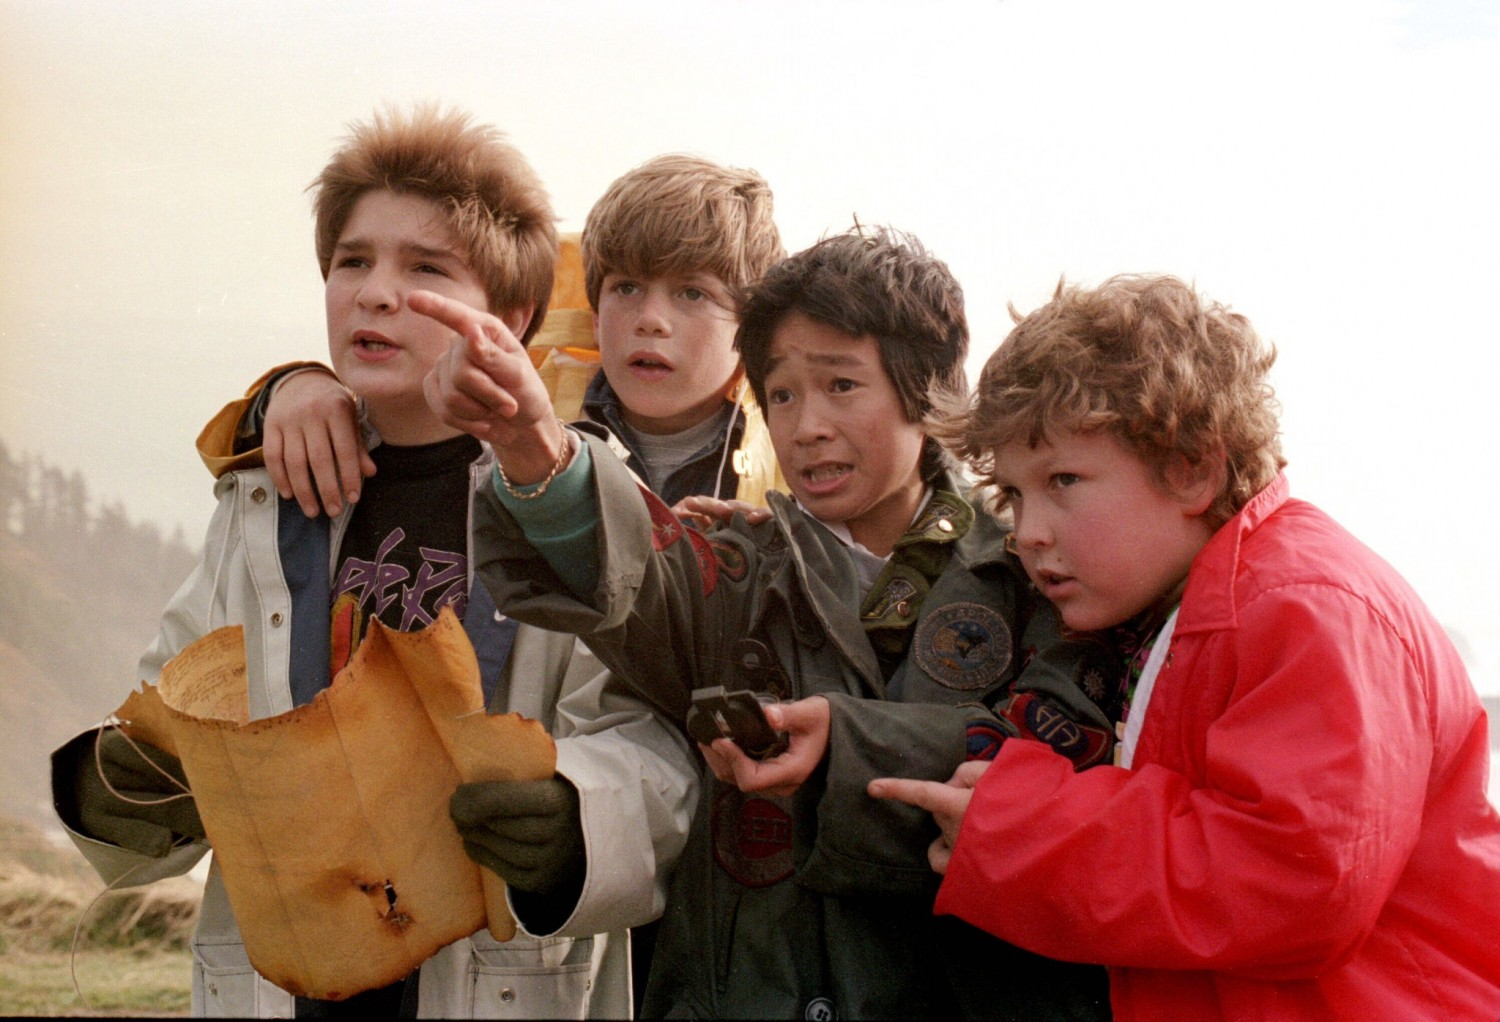 THE GOONIES Are Coming to TV, in a Very Unexpected Way